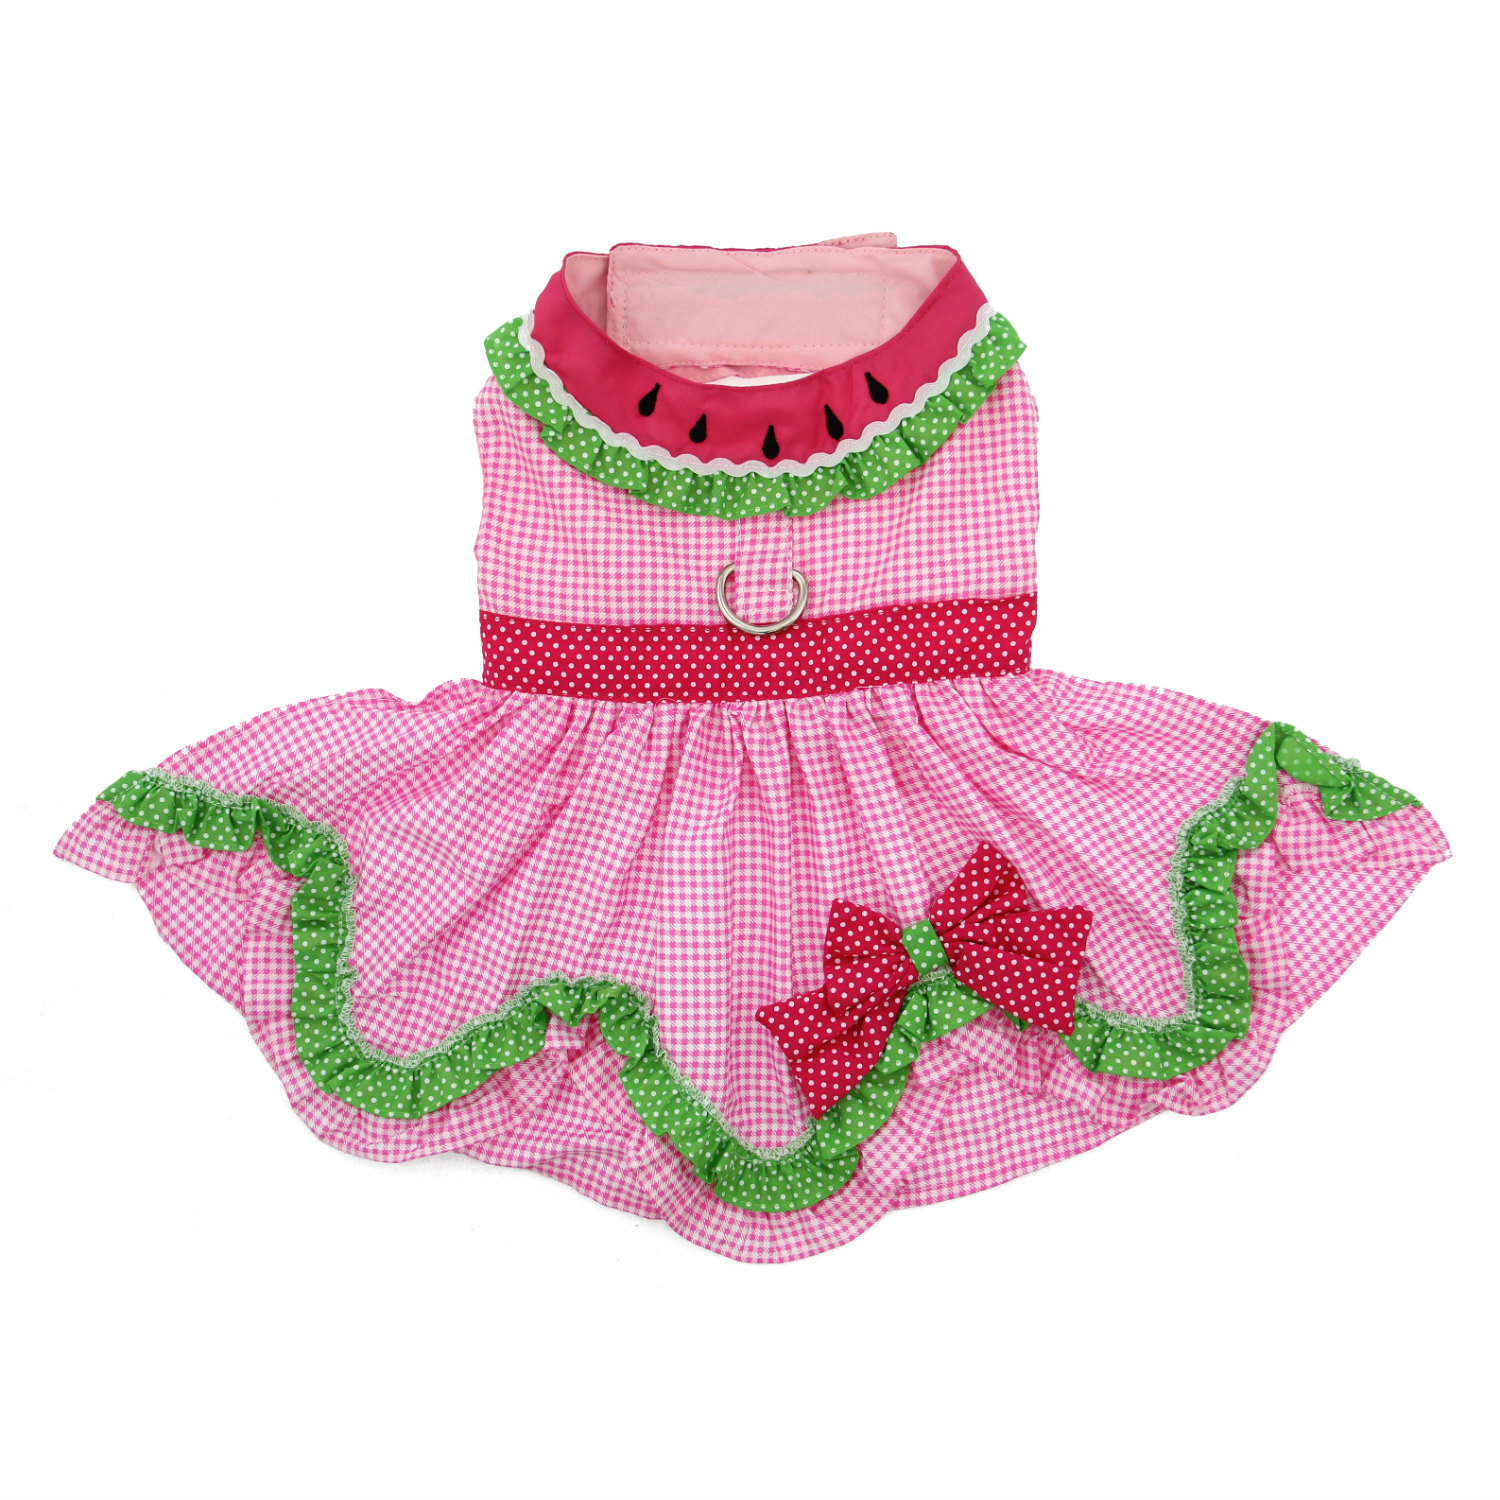 Doggie Design Dog Dress with Matching Leash, Watermelon, Large